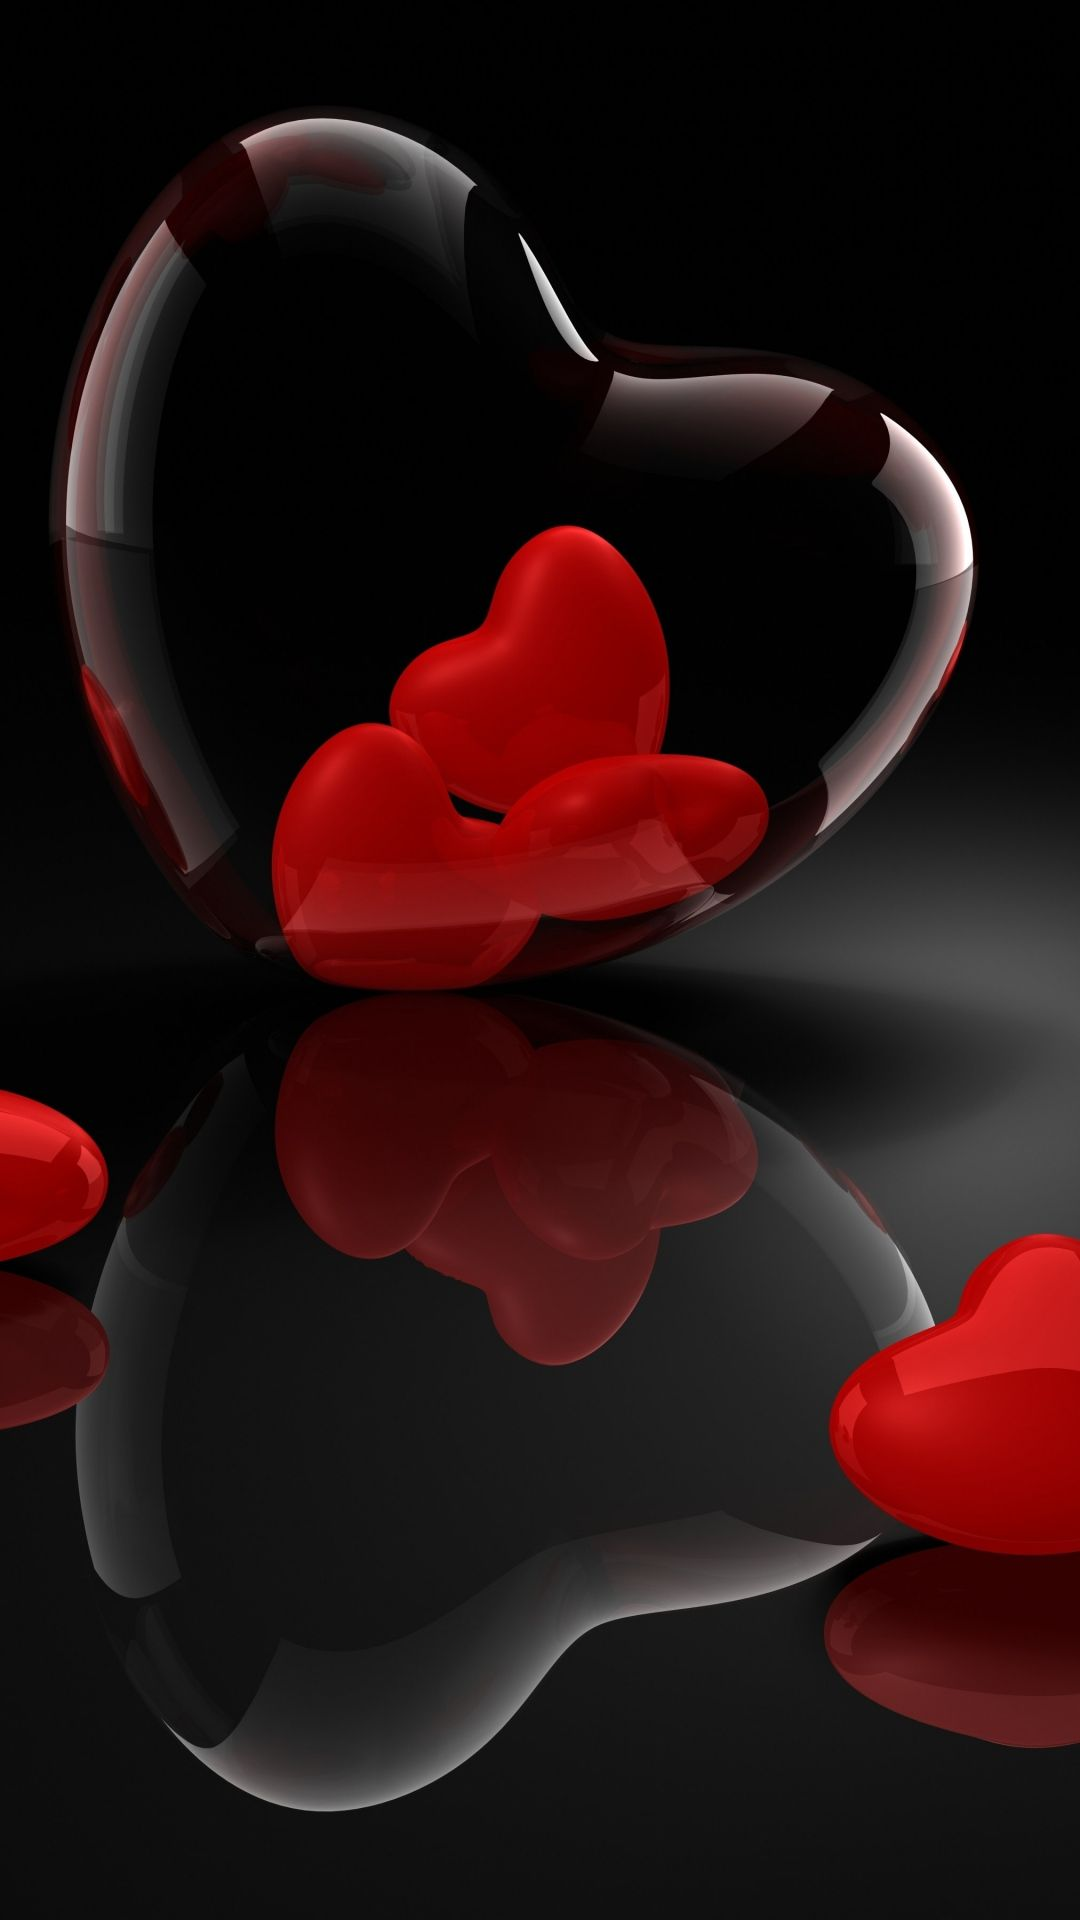 Heart Glass 3d Reflection Iphone 6 Plus Wallpaper Heart Wallpaper Love Wallpaper Love Valentines